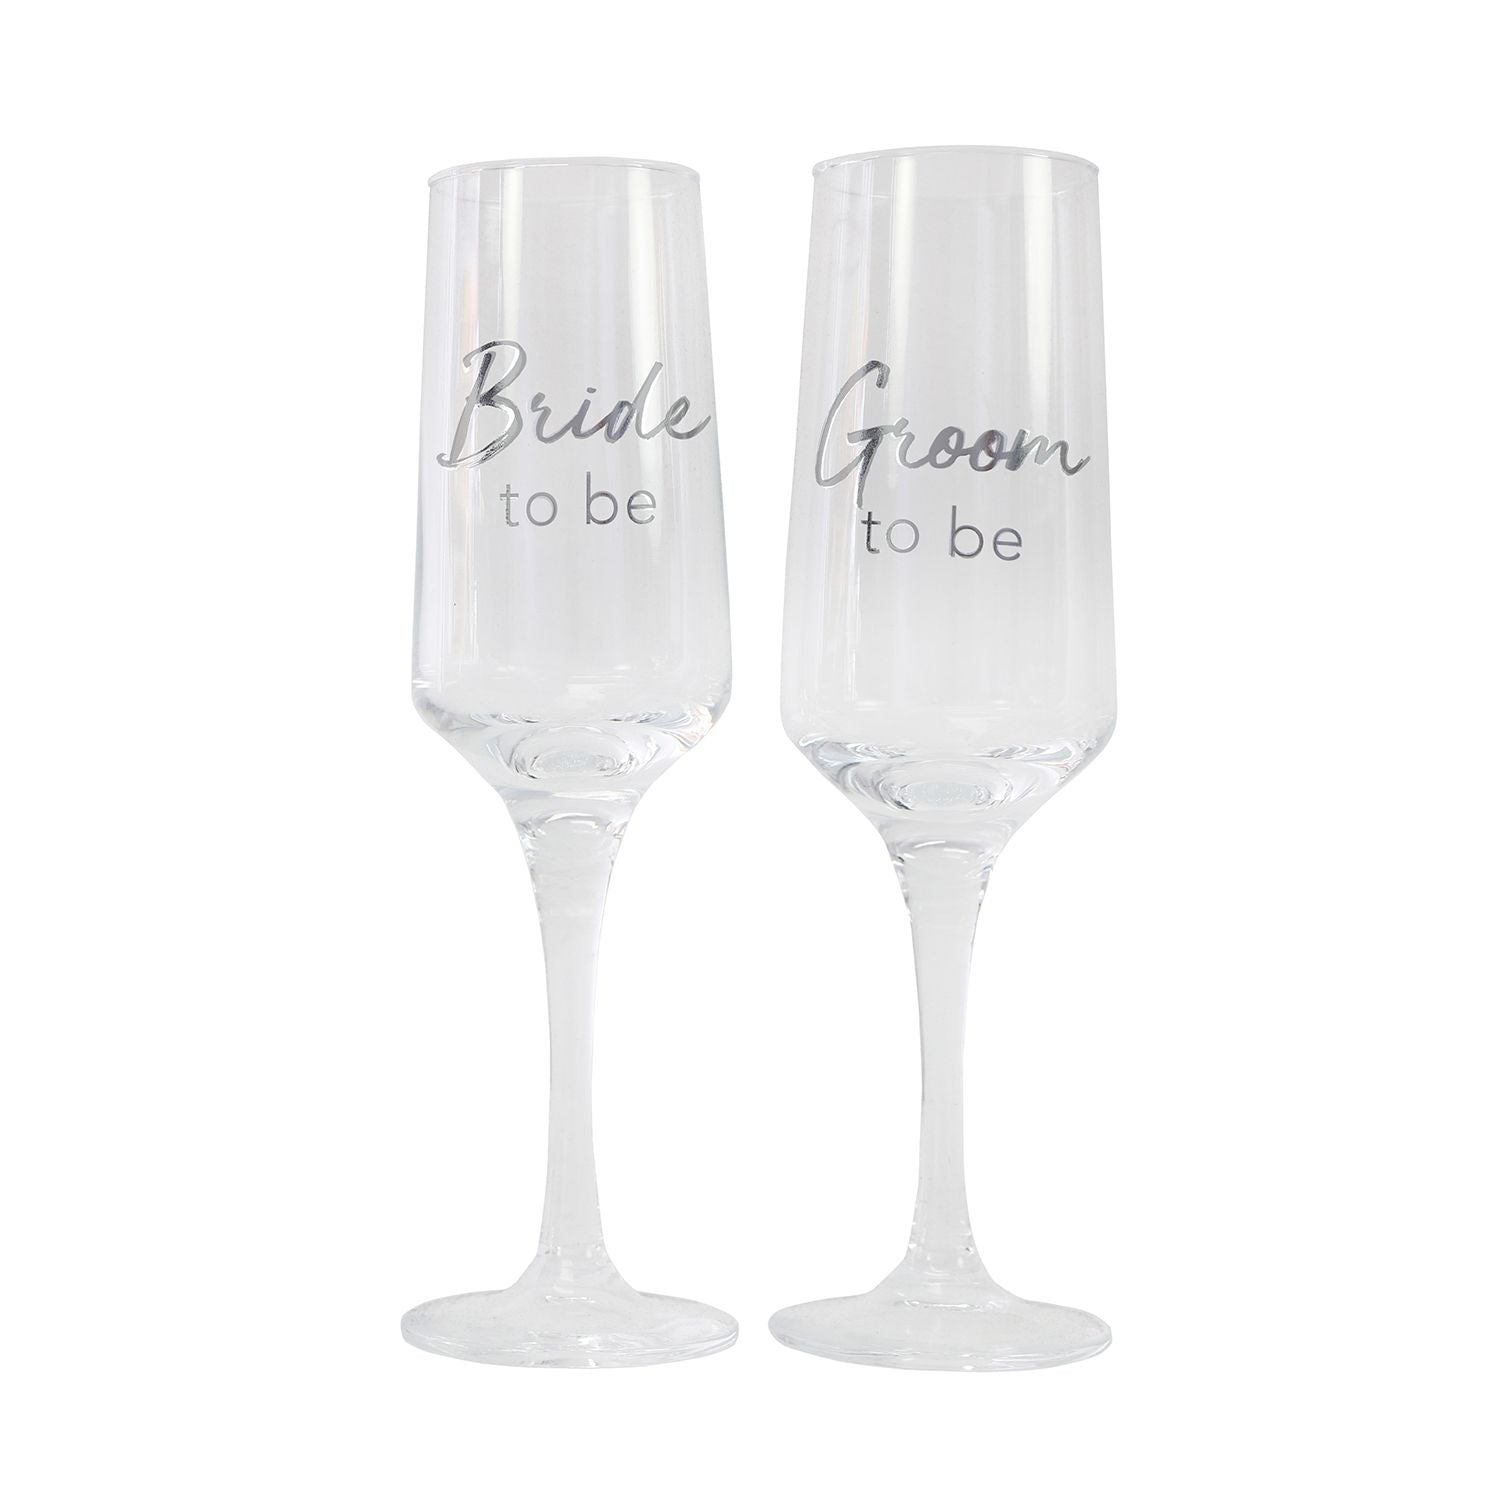 Engagement Champagne Flutes - Bride & Groom To Be